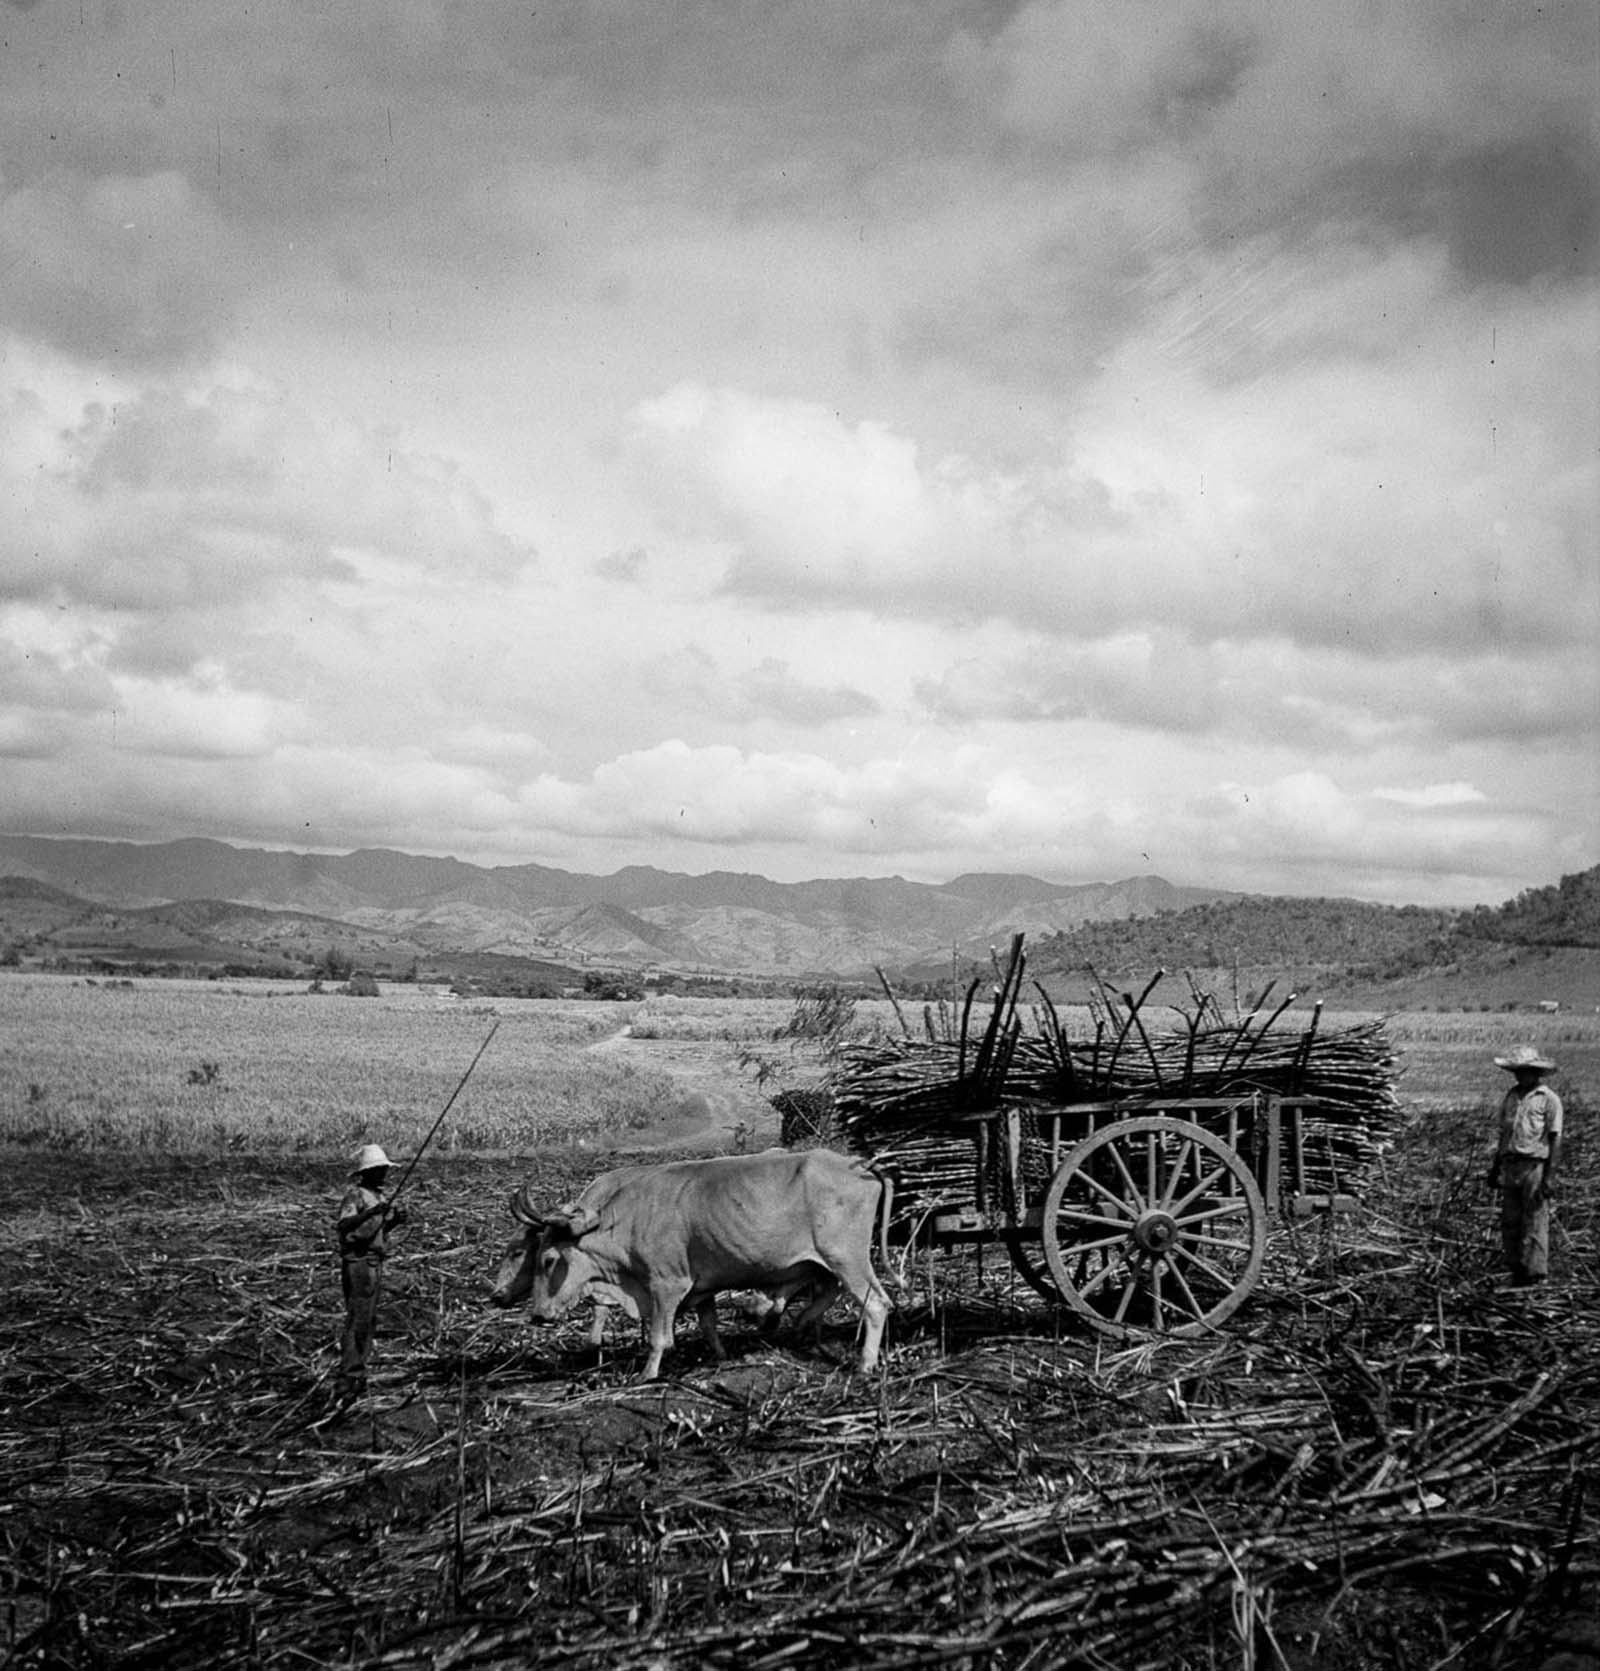 Laborers harvest sugarcane from a burned field near Guanica.